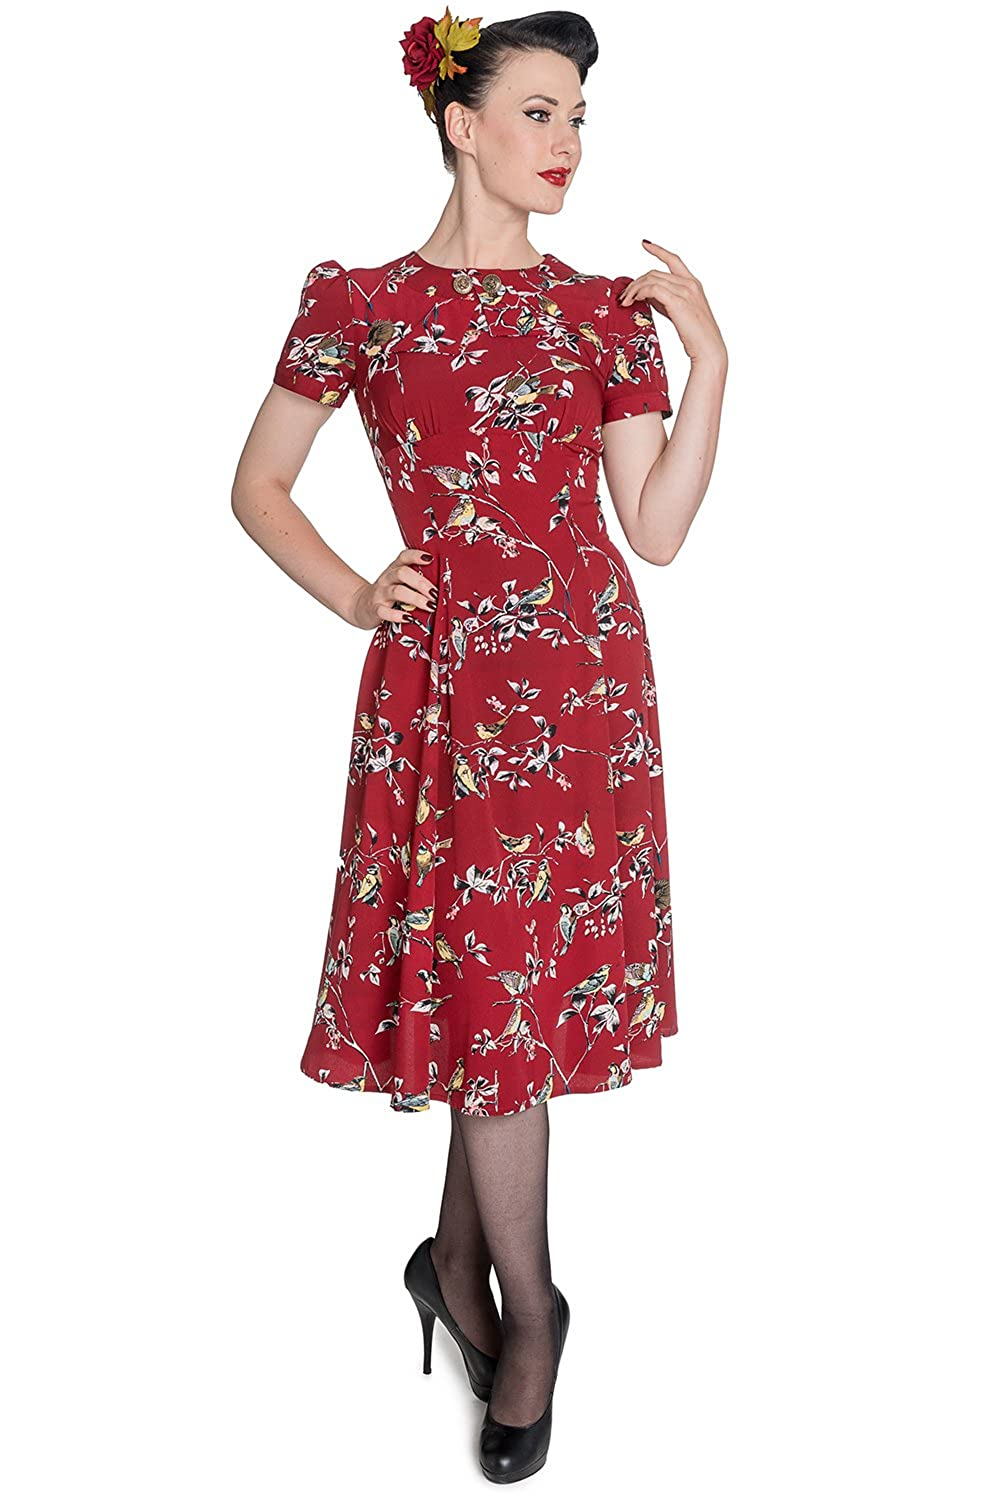 Plus Size Vintage Dresses, Plus Size Retro Dresses  Landgirl 40s Dress $39.99 AT vintagedancer.com